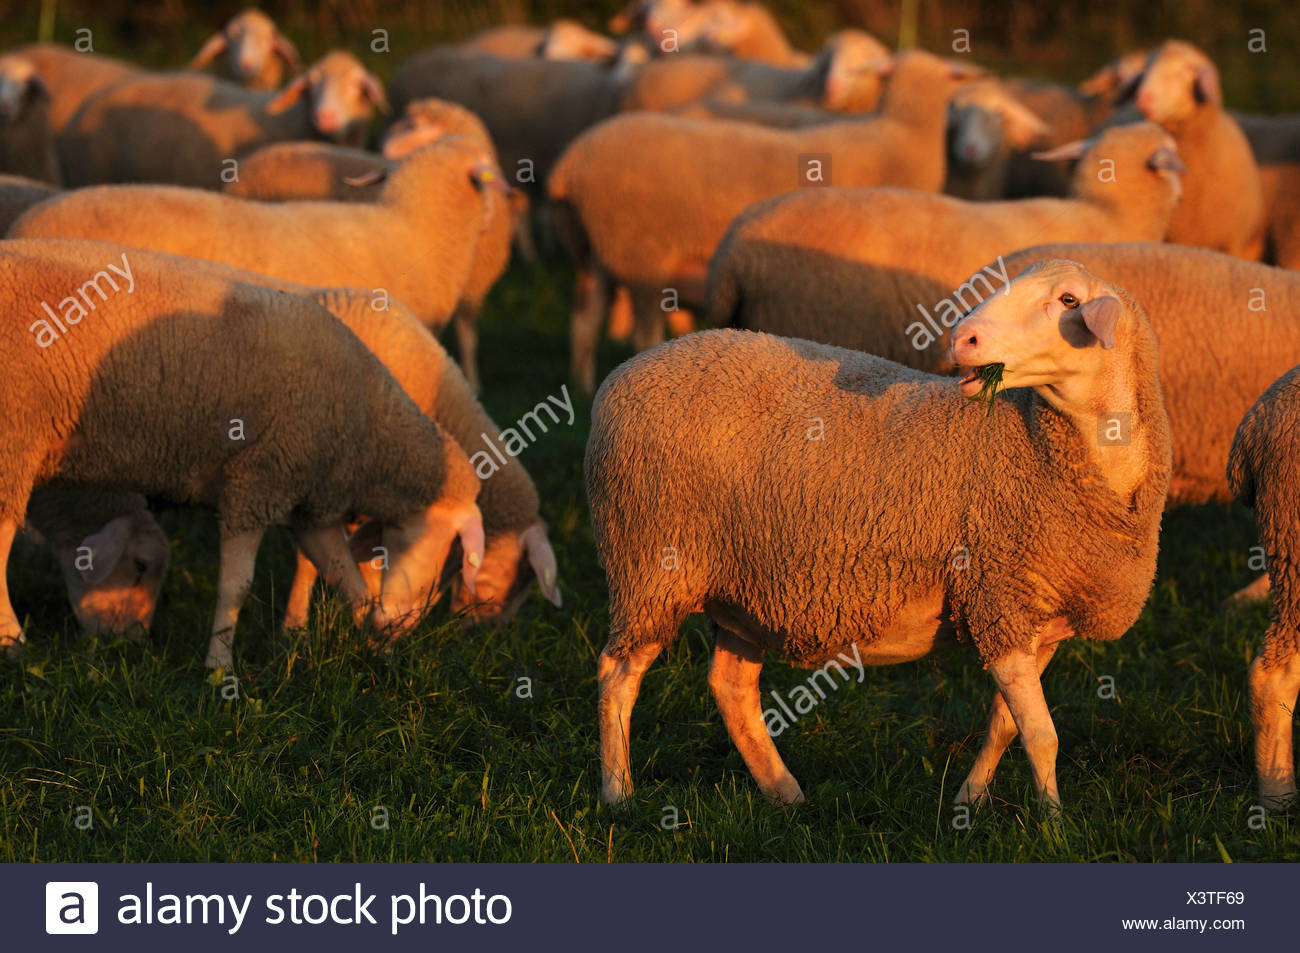 domestic sheep (Ovis ammon f. aries), flocks of sheep grazing in evening light, Germany - Stock Image